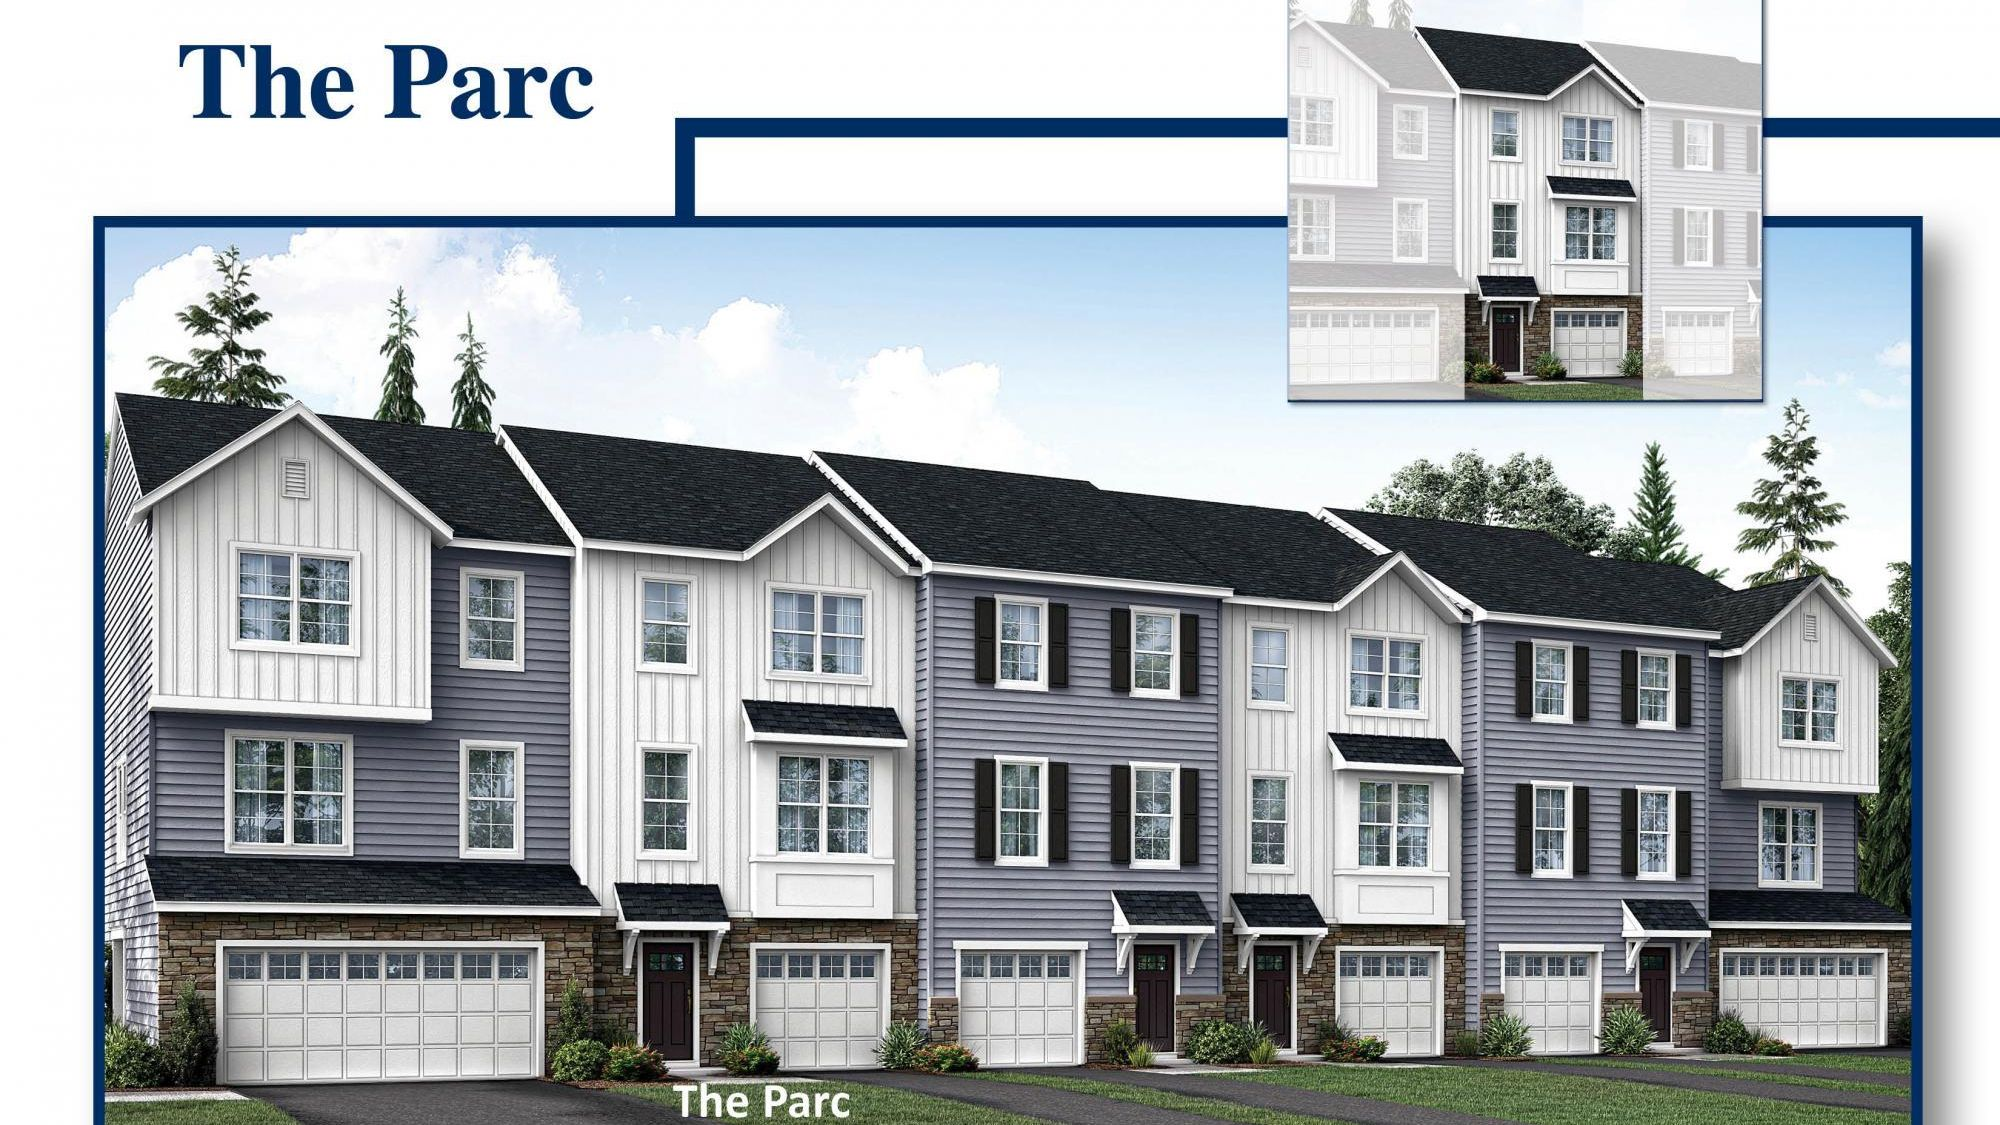 Exterior of the The Parc model new townhome in south Jersey, illustrated with 1 car garage, siding, plus stone on first floor facade.